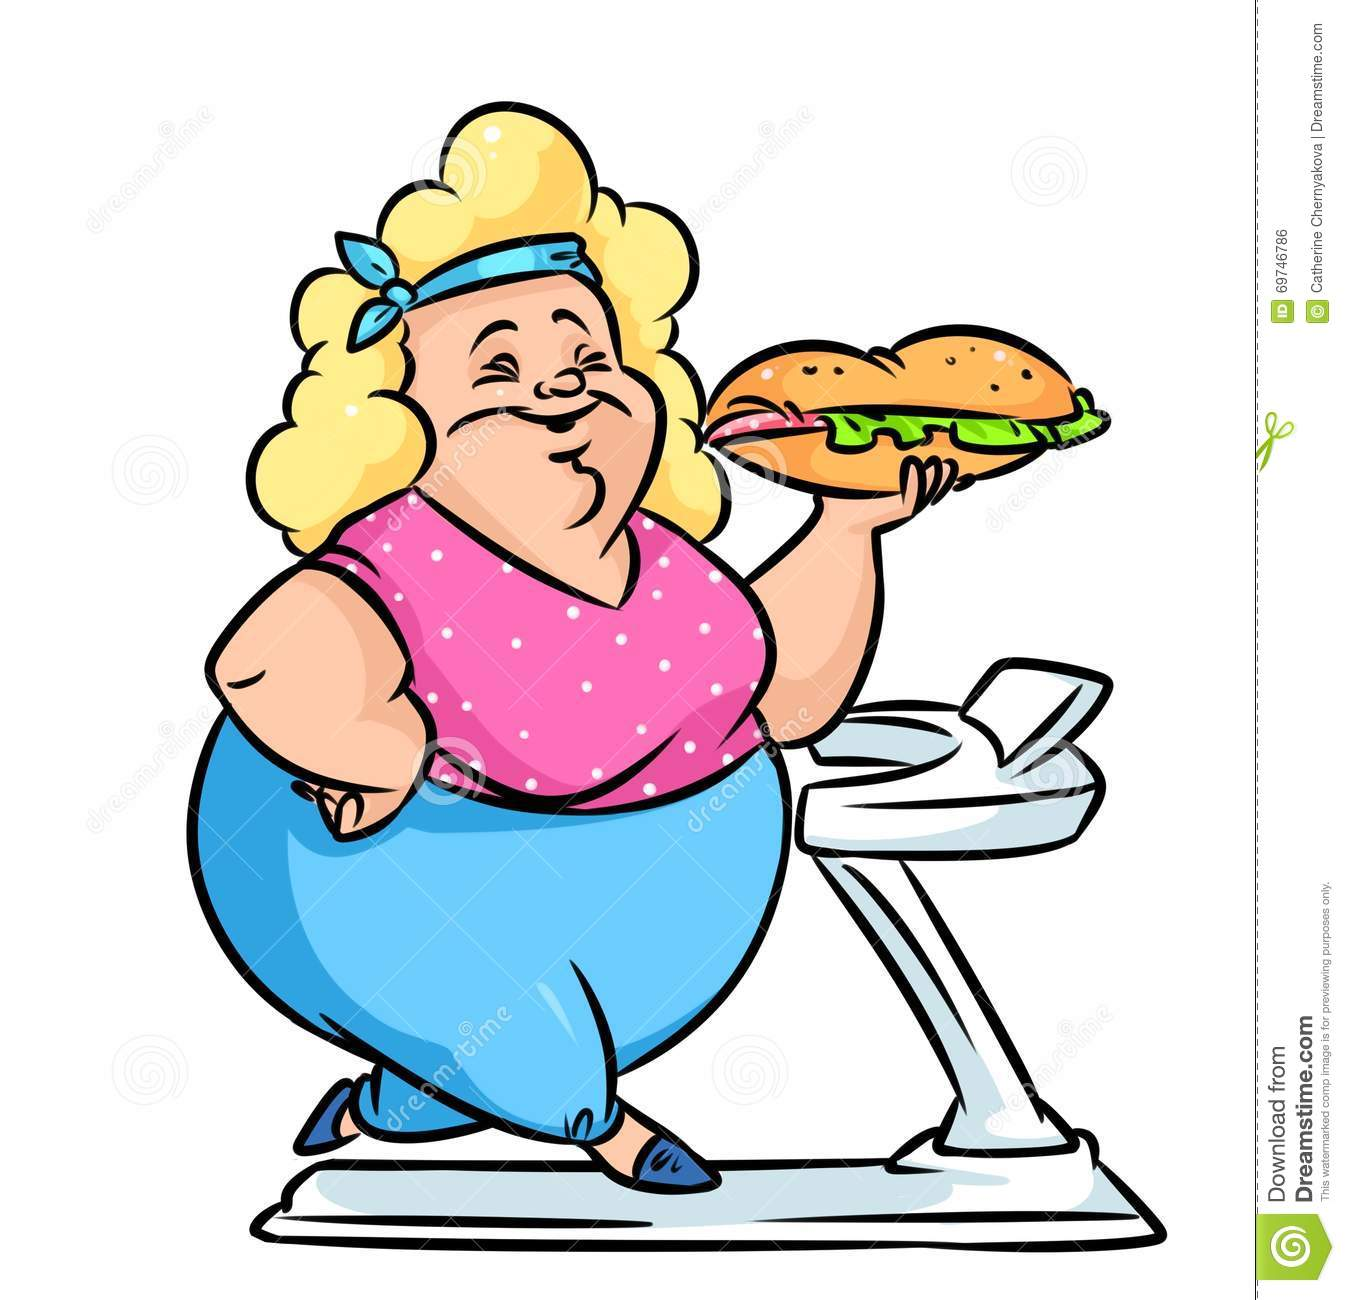 Images Of Fat Women 36